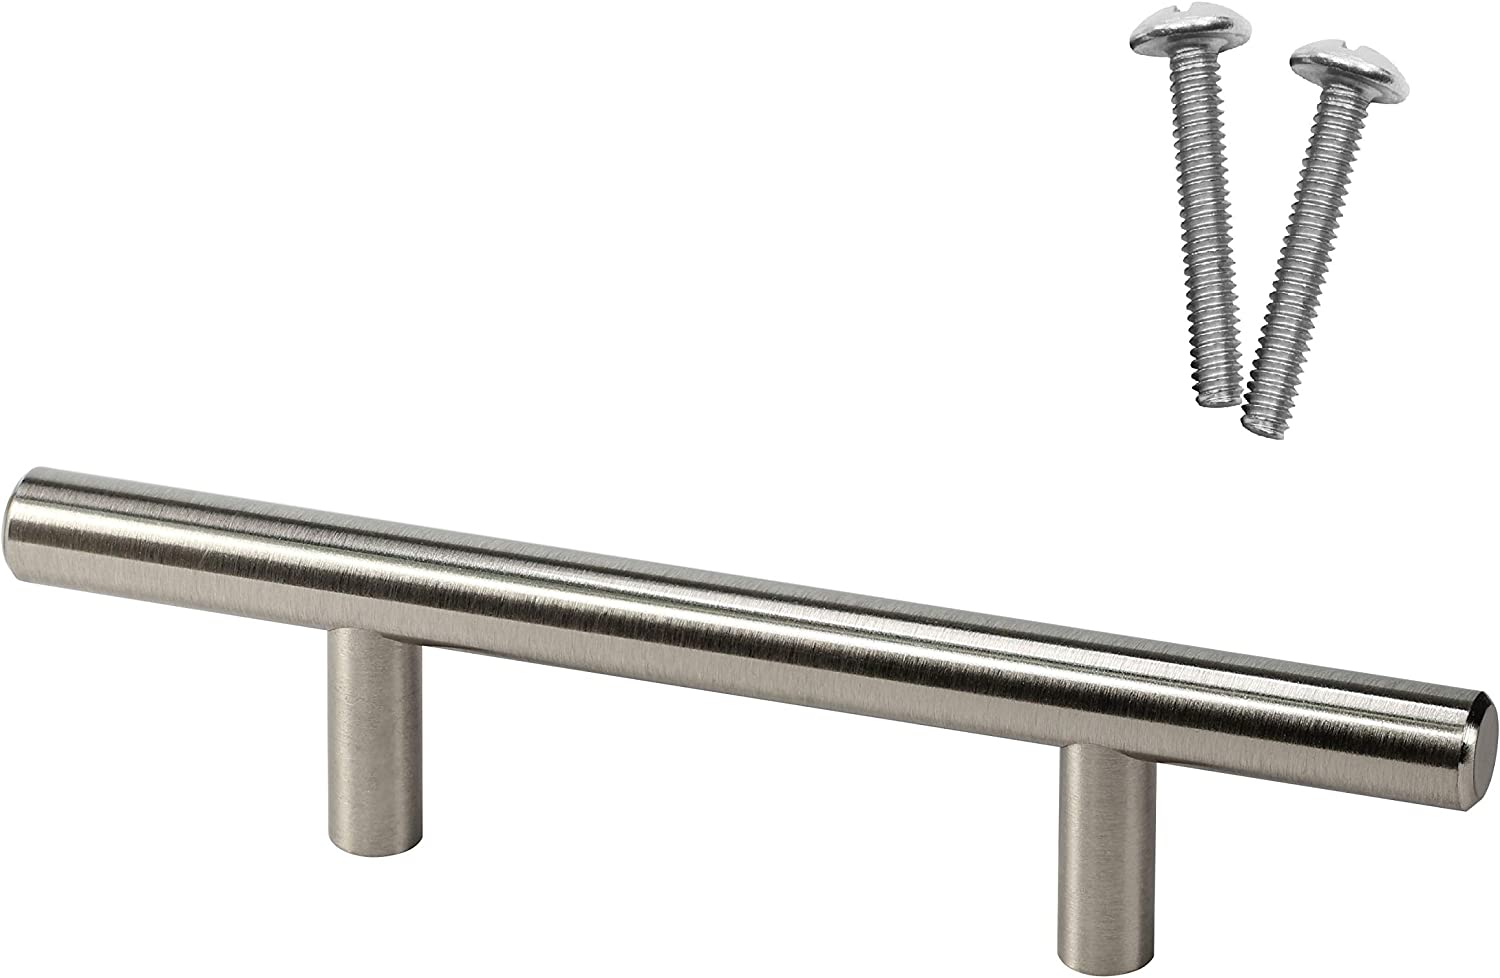 "5 Rok 3/"" Brushed Nickel Kitchen Cabinet Drawer T Bar Pull Handle Pull 6/"" Length"